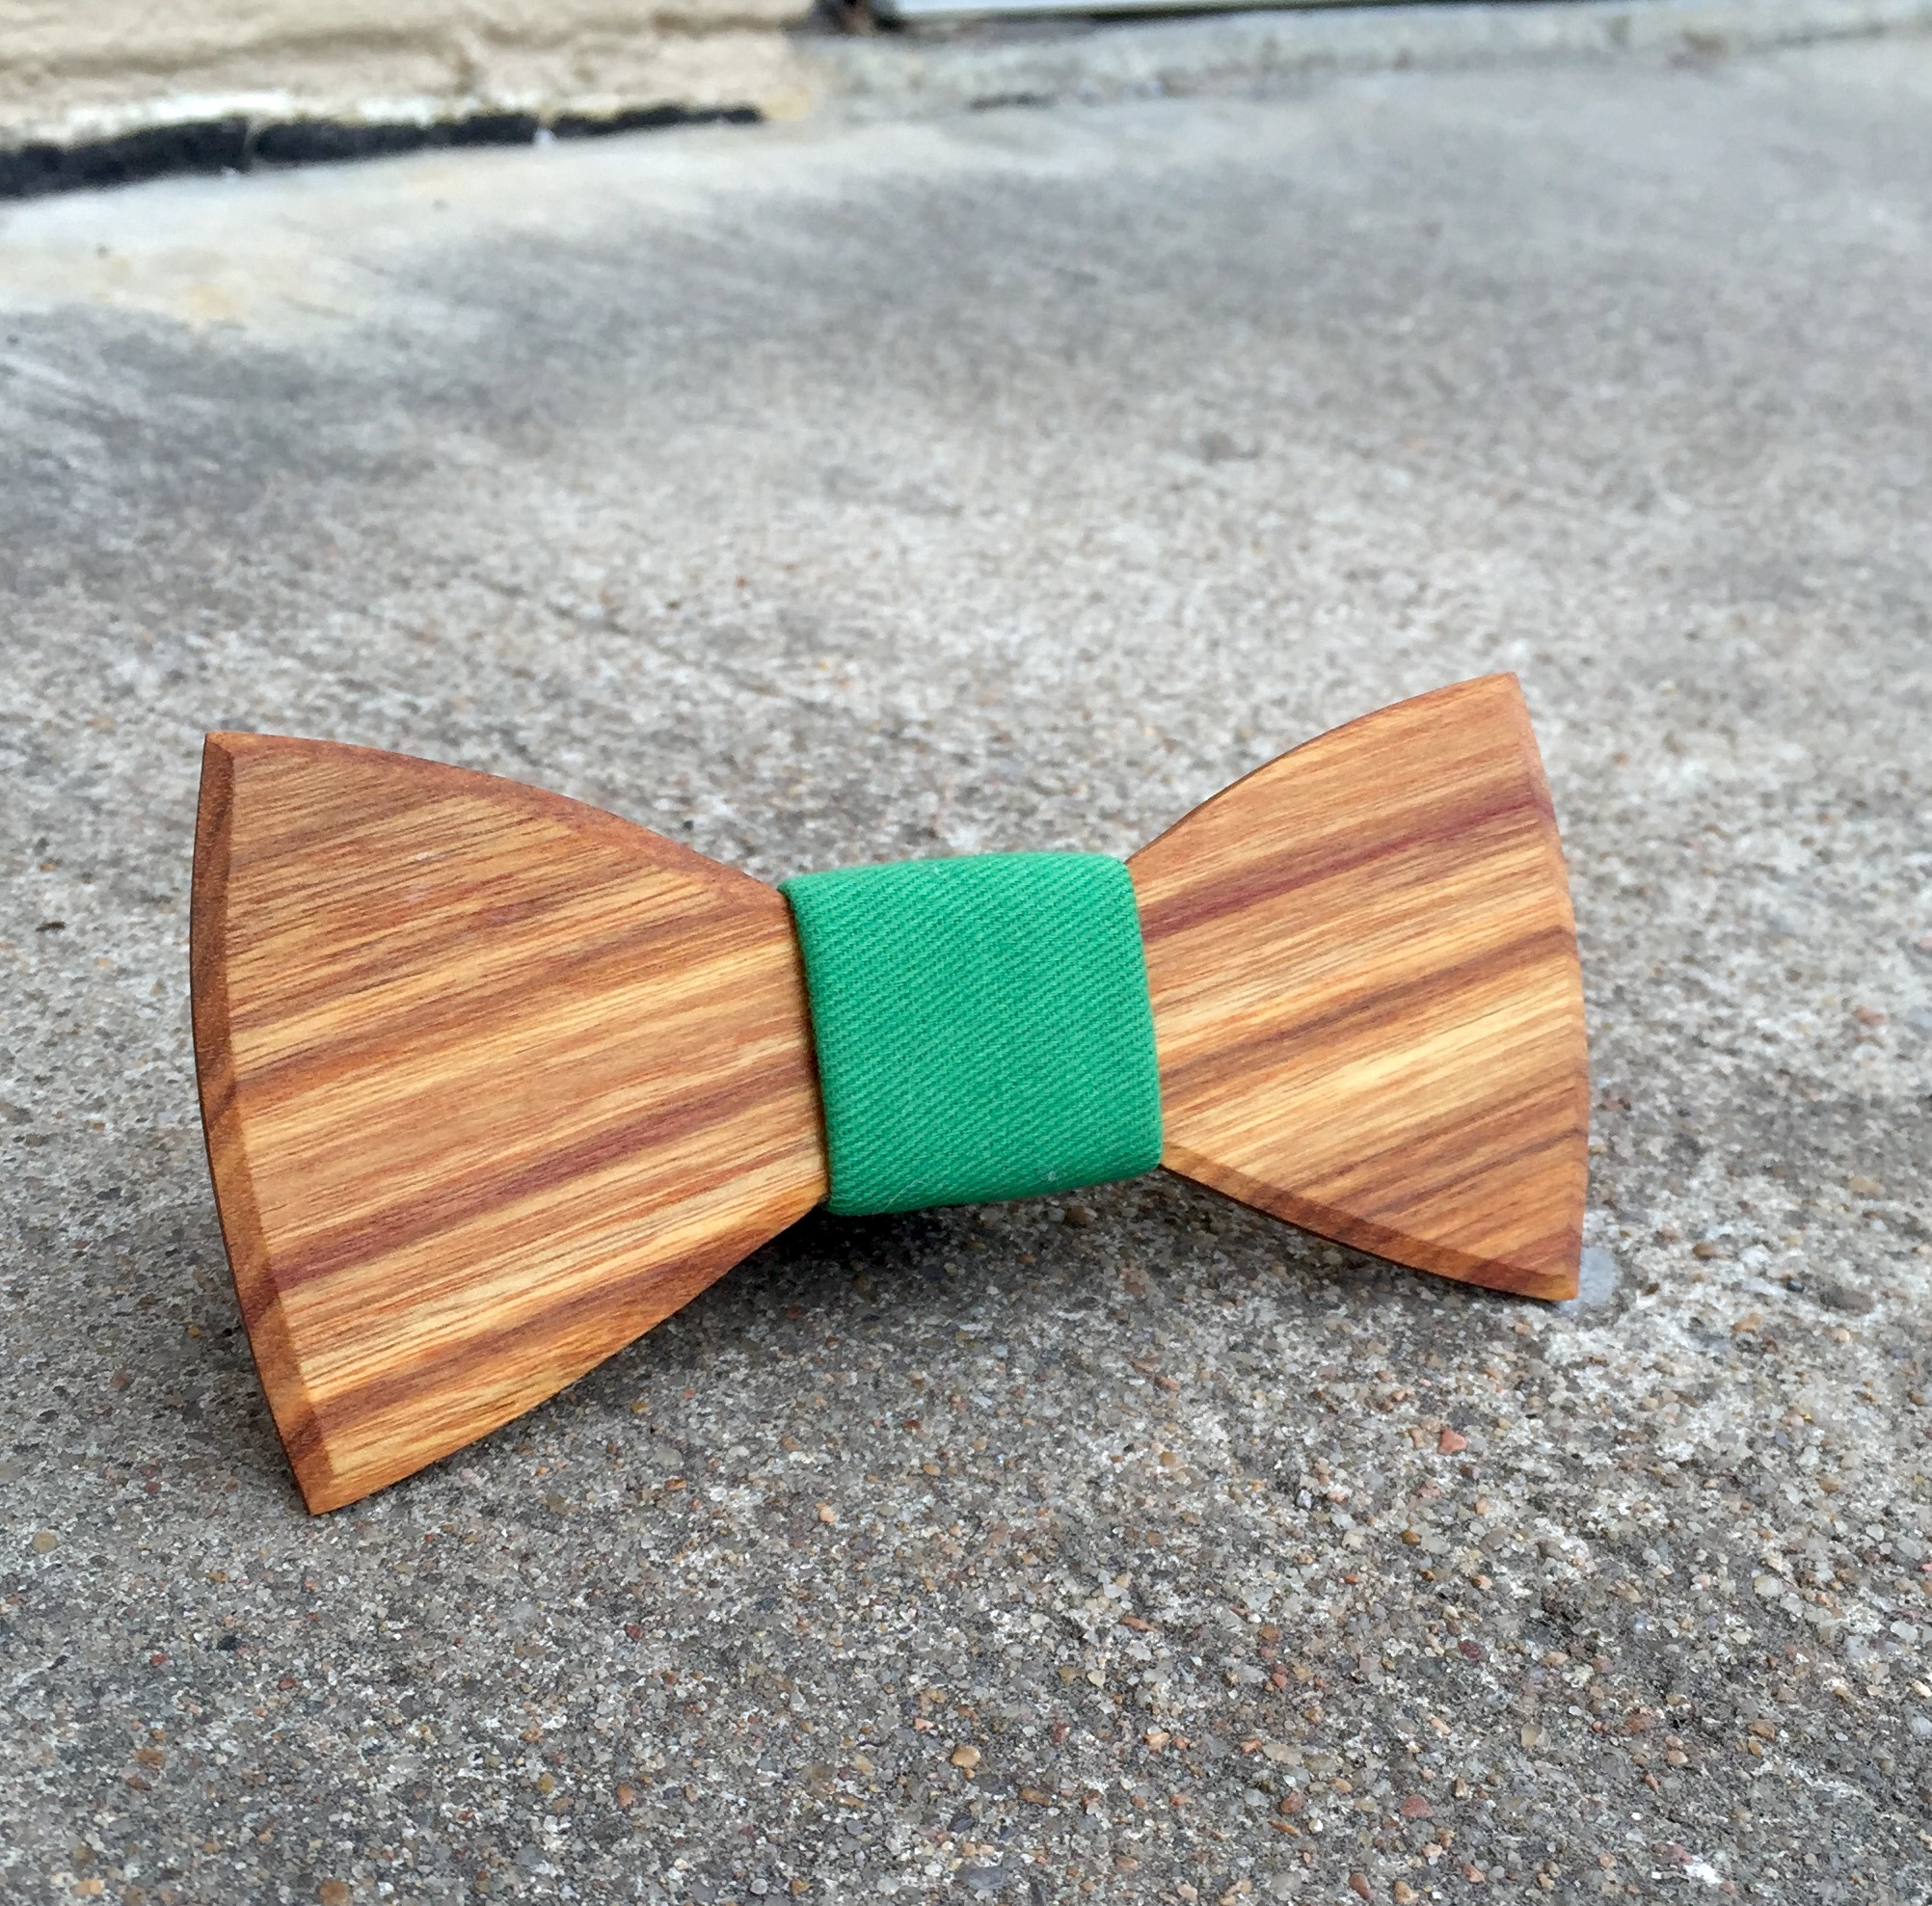 e32d1aa87770 You could also create your own hand-crafted wooden bow tie to rep your  favorite sports team or alma mater. Show your pride in the most dapper way  possible.